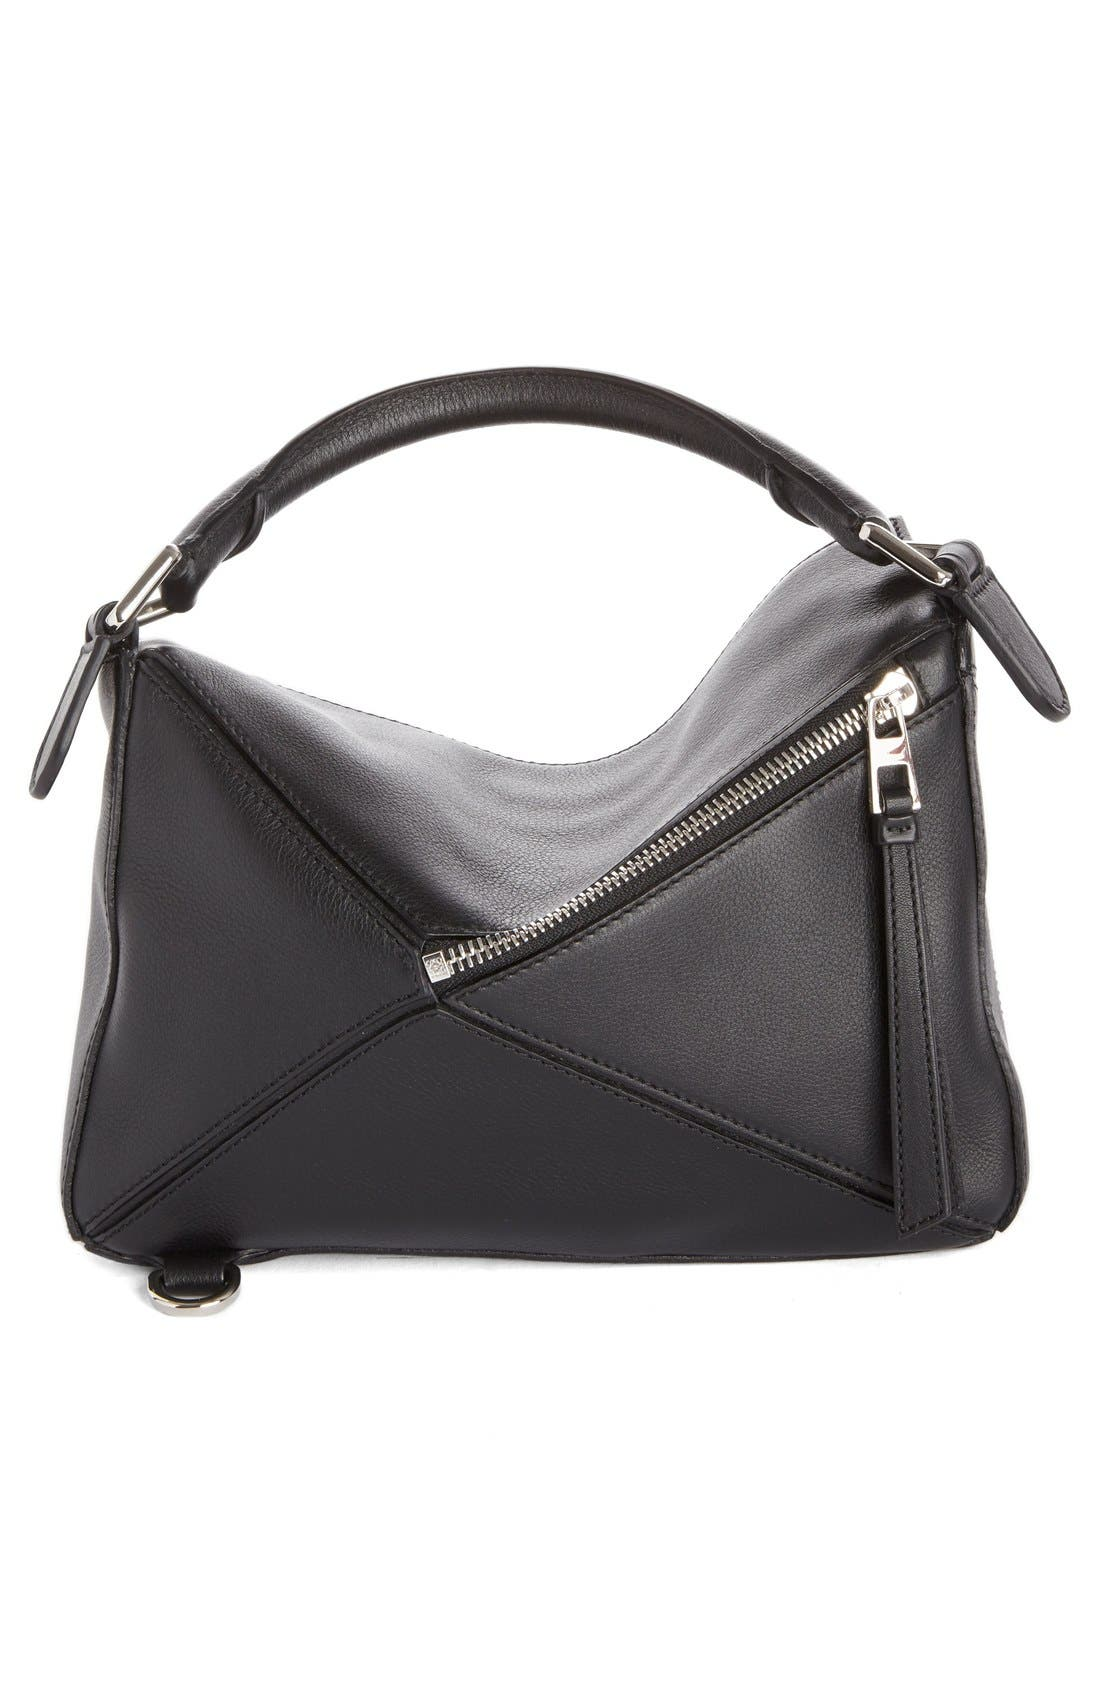 'Small Puzzle' Calfskin Leather Bag,                             Alternate thumbnail 2, color,                             001